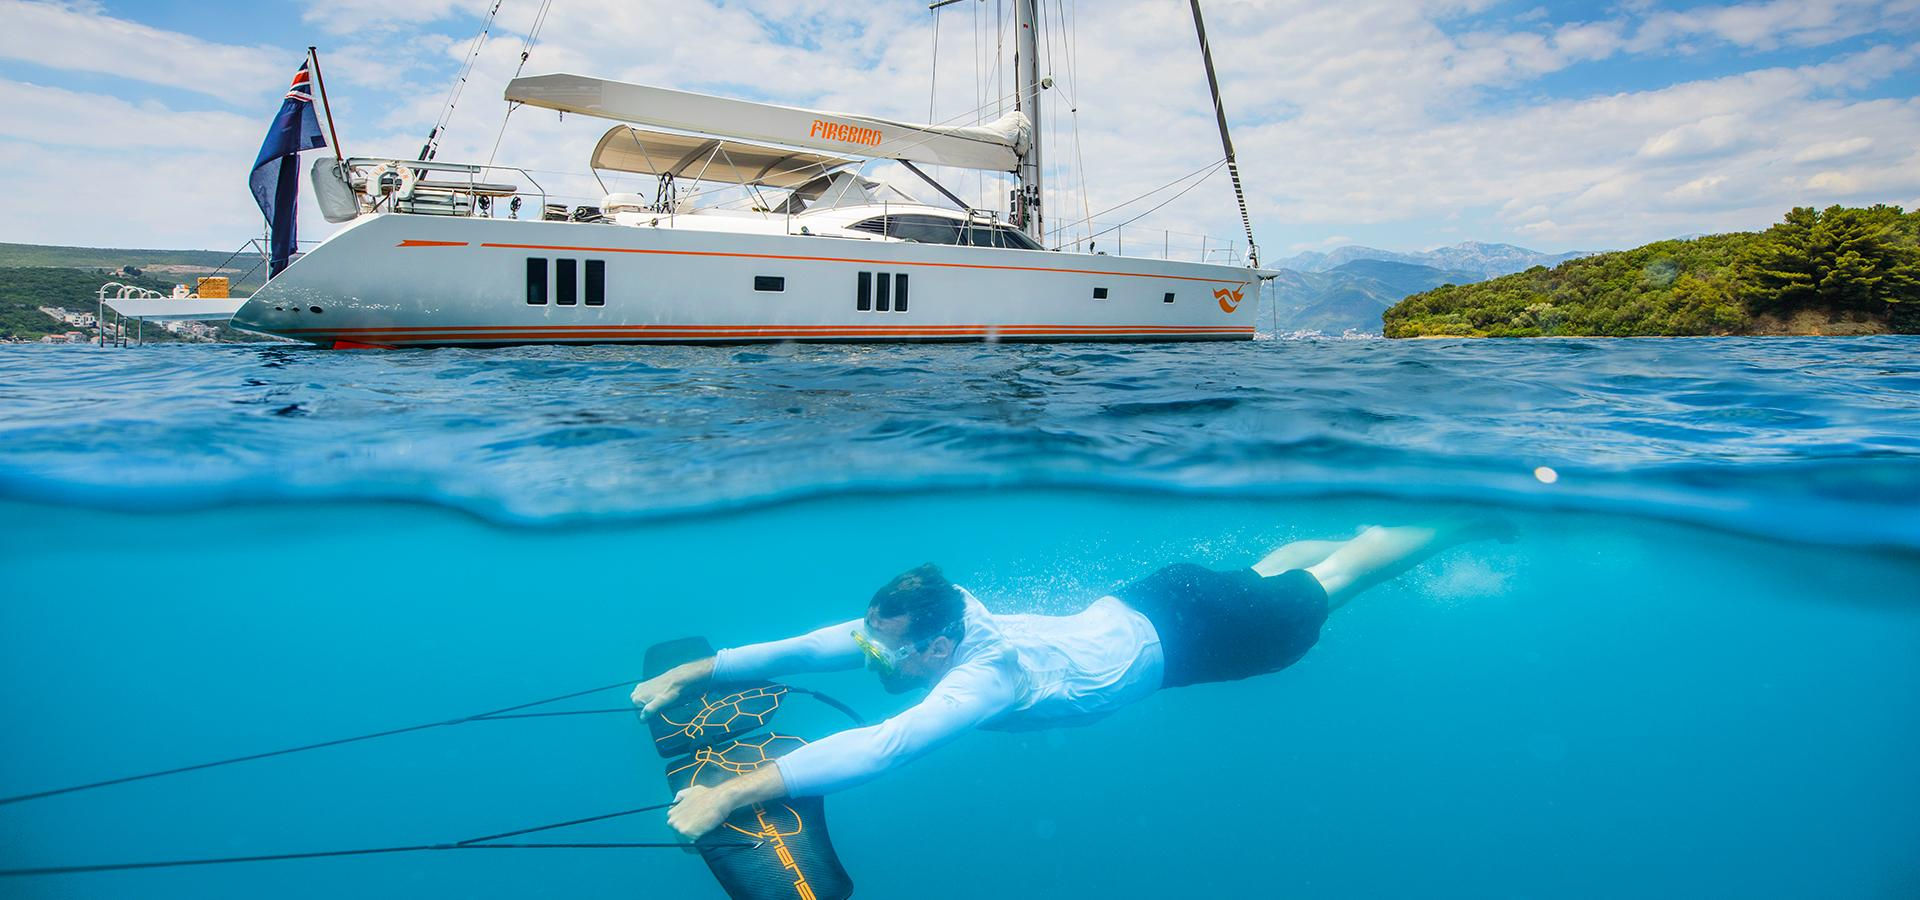 Oyster Luxury Private Sailing Charter